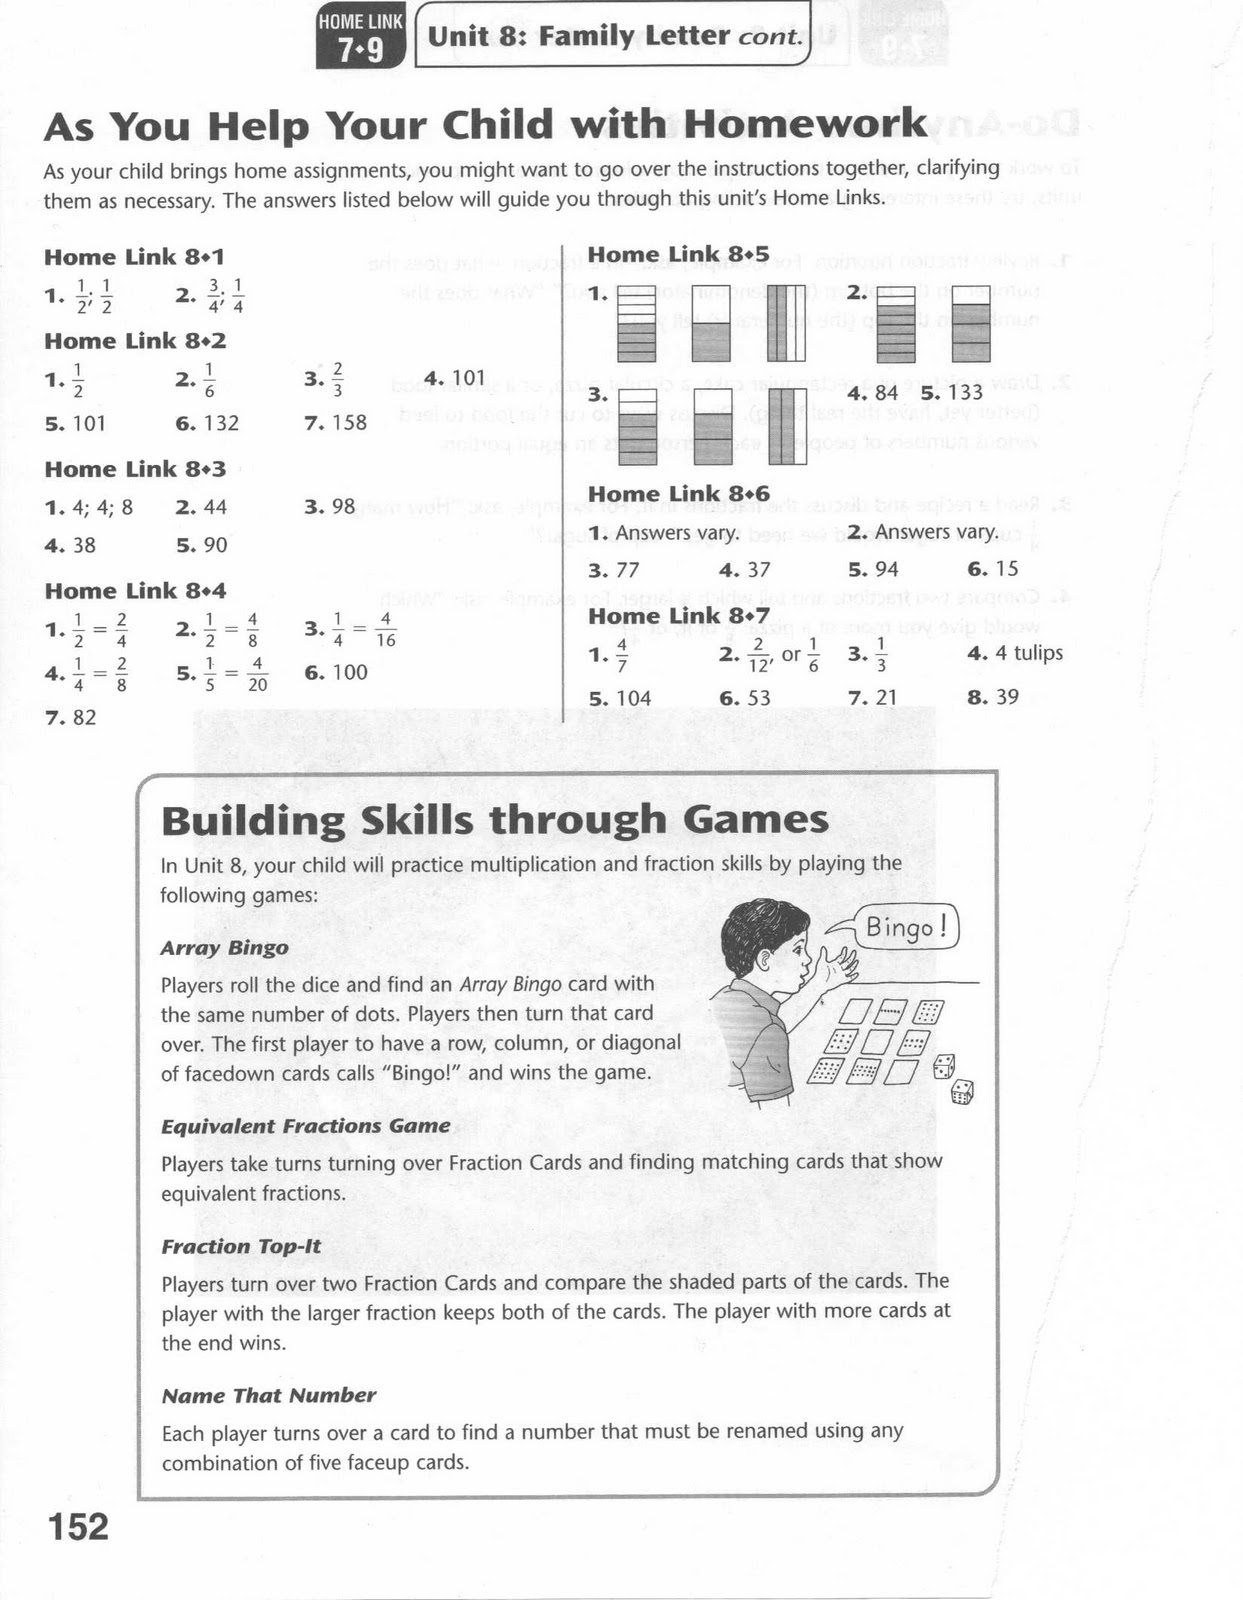 Everyday Math Practice Worksheets Grade 4 - Templates and Worksheets